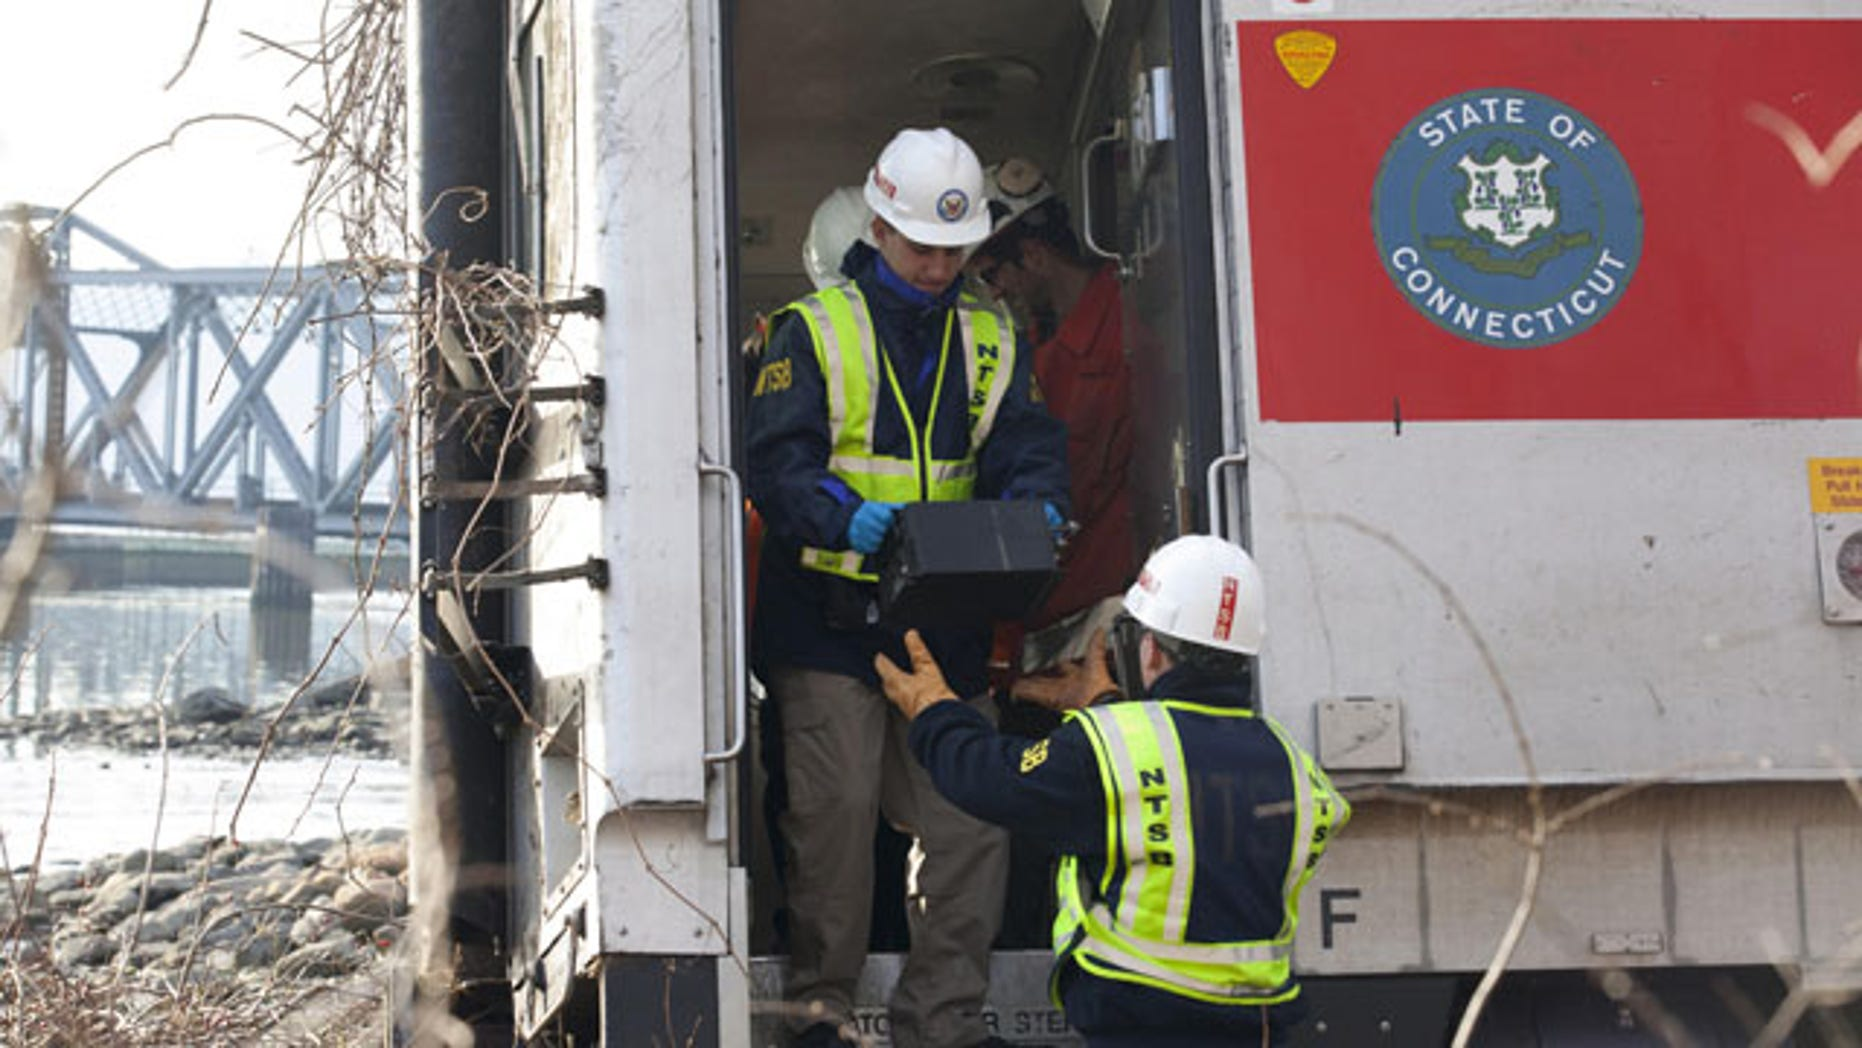 December 1, 2013: NTSB investigator George Haralampopoulous hands a data recorder down to Mike Hiller from the derailed Metro-North train in the Bronx borough of New York. (AP Photo/NTSB)